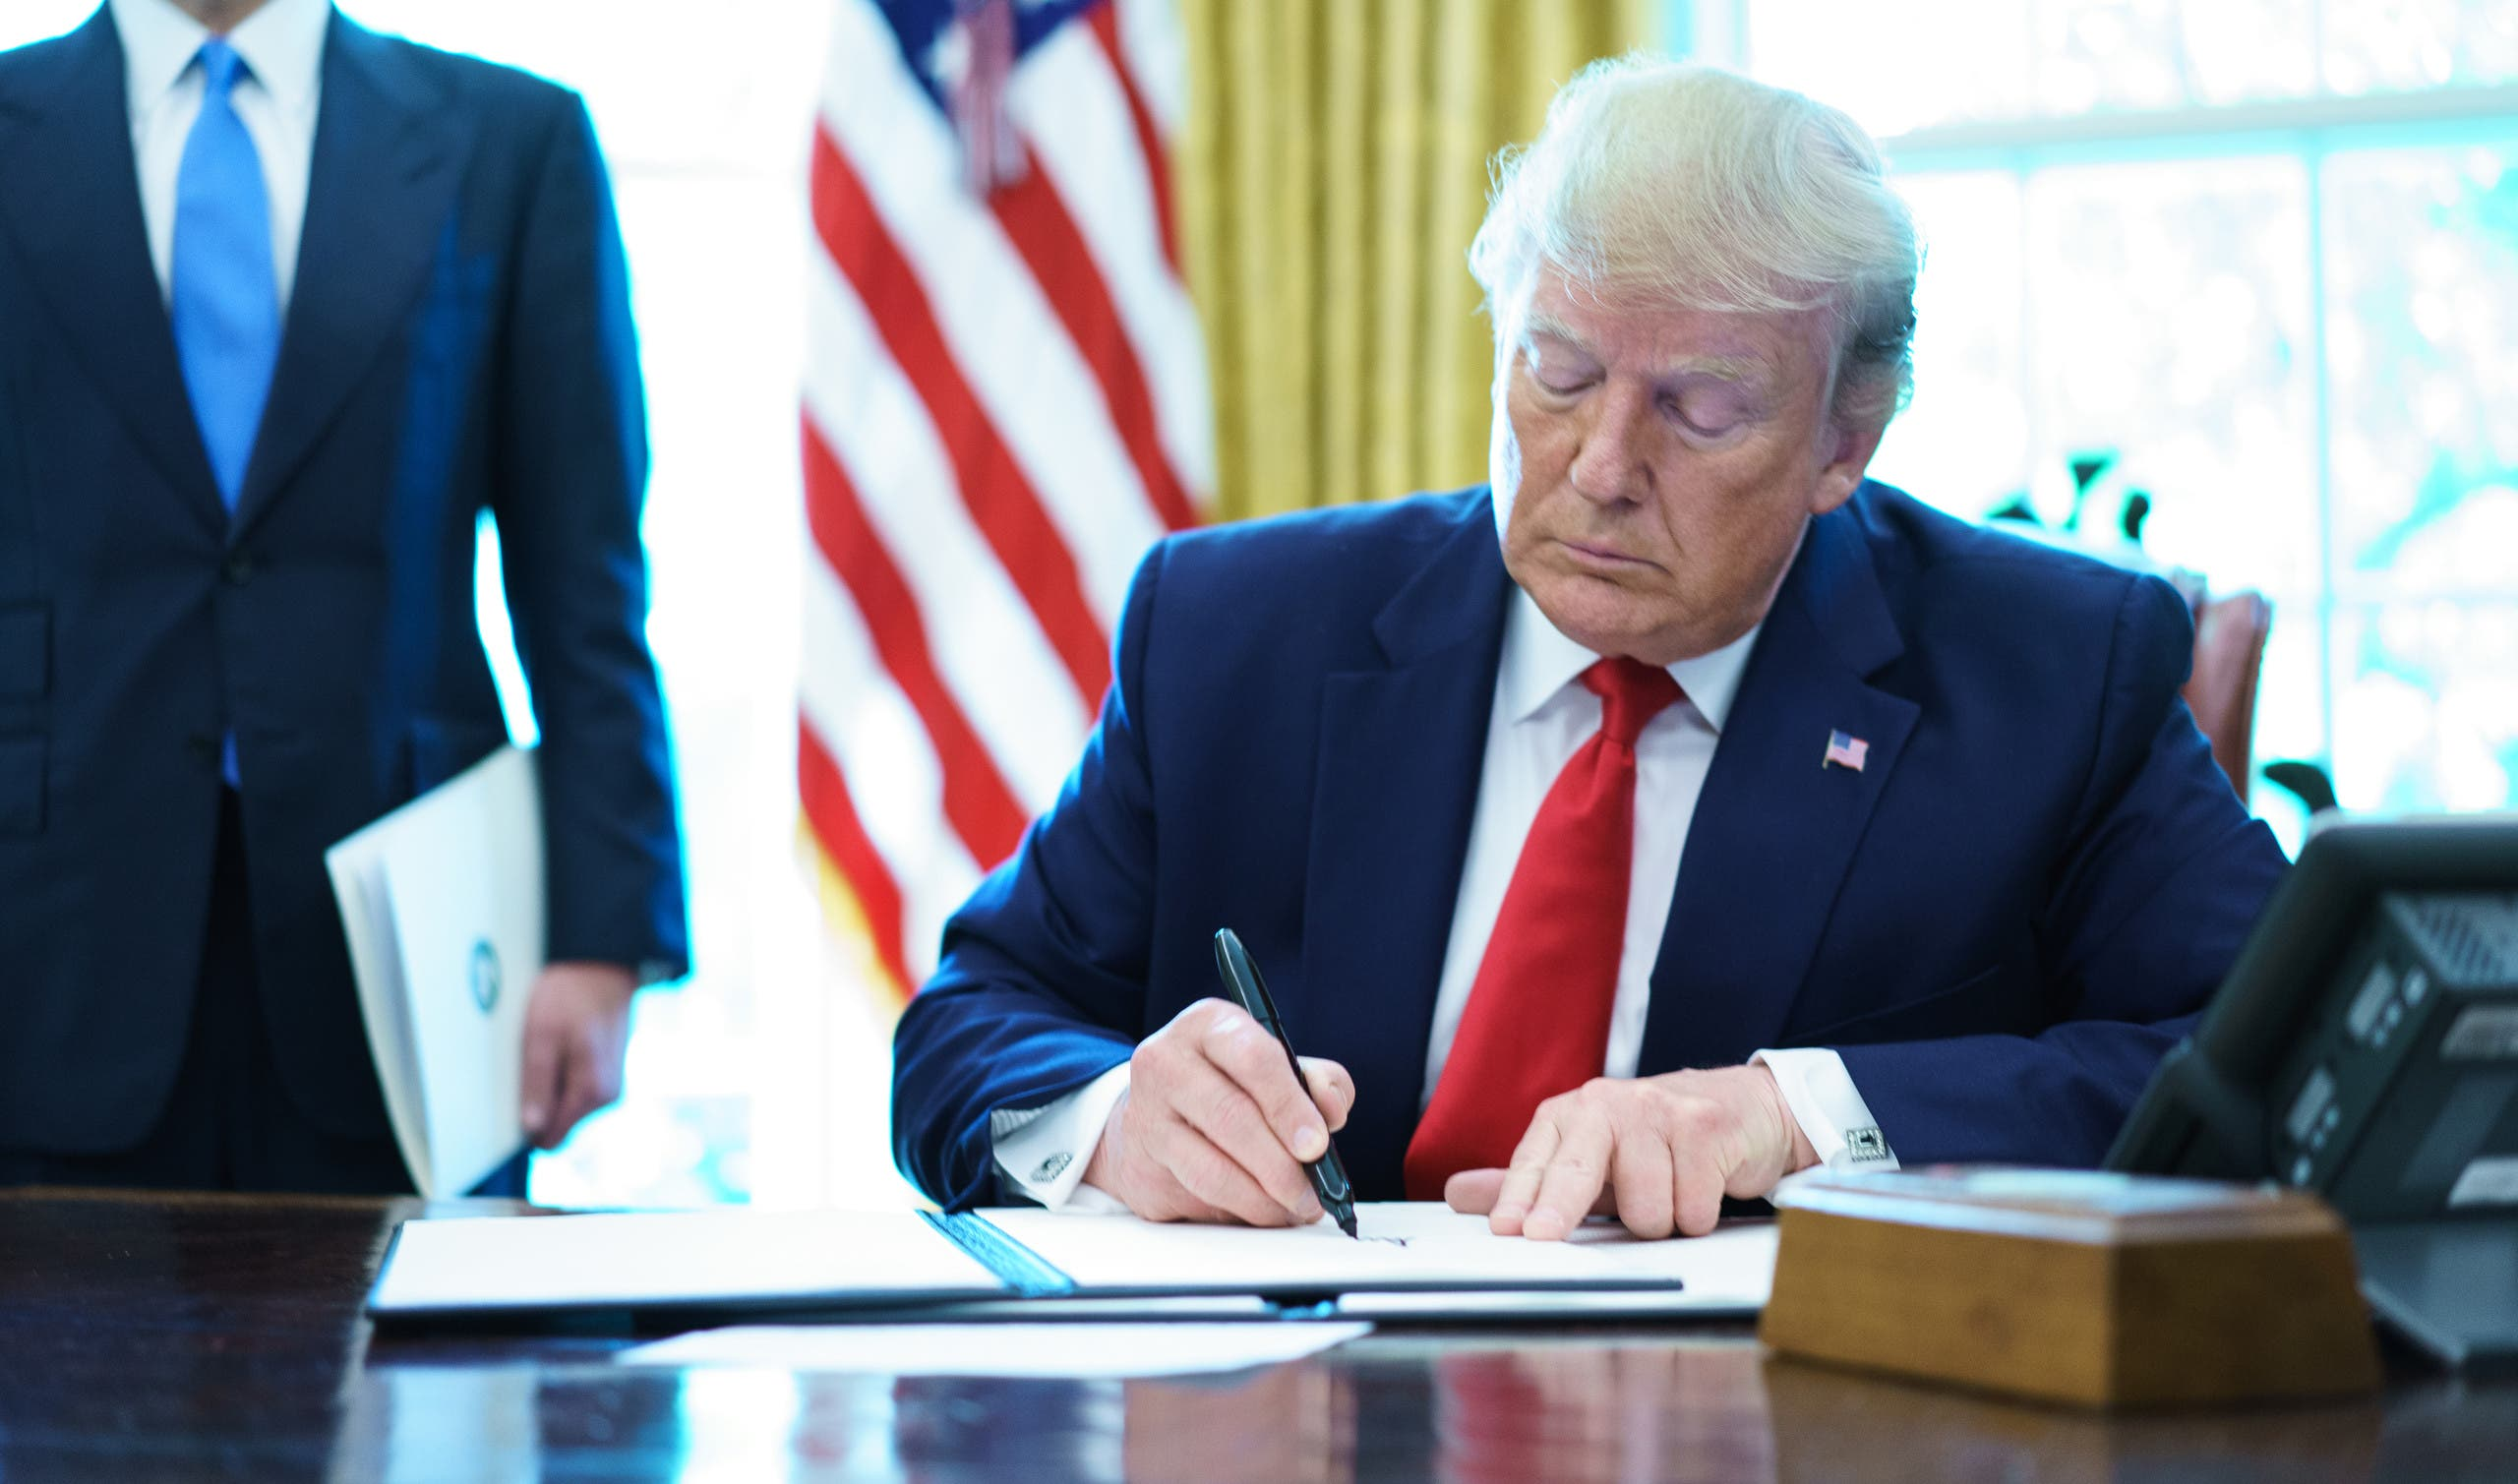 US President Donald Trump signs an executive order on Iran sanctions in the Oval Office of the White House on June 24, 2019. (AFP)